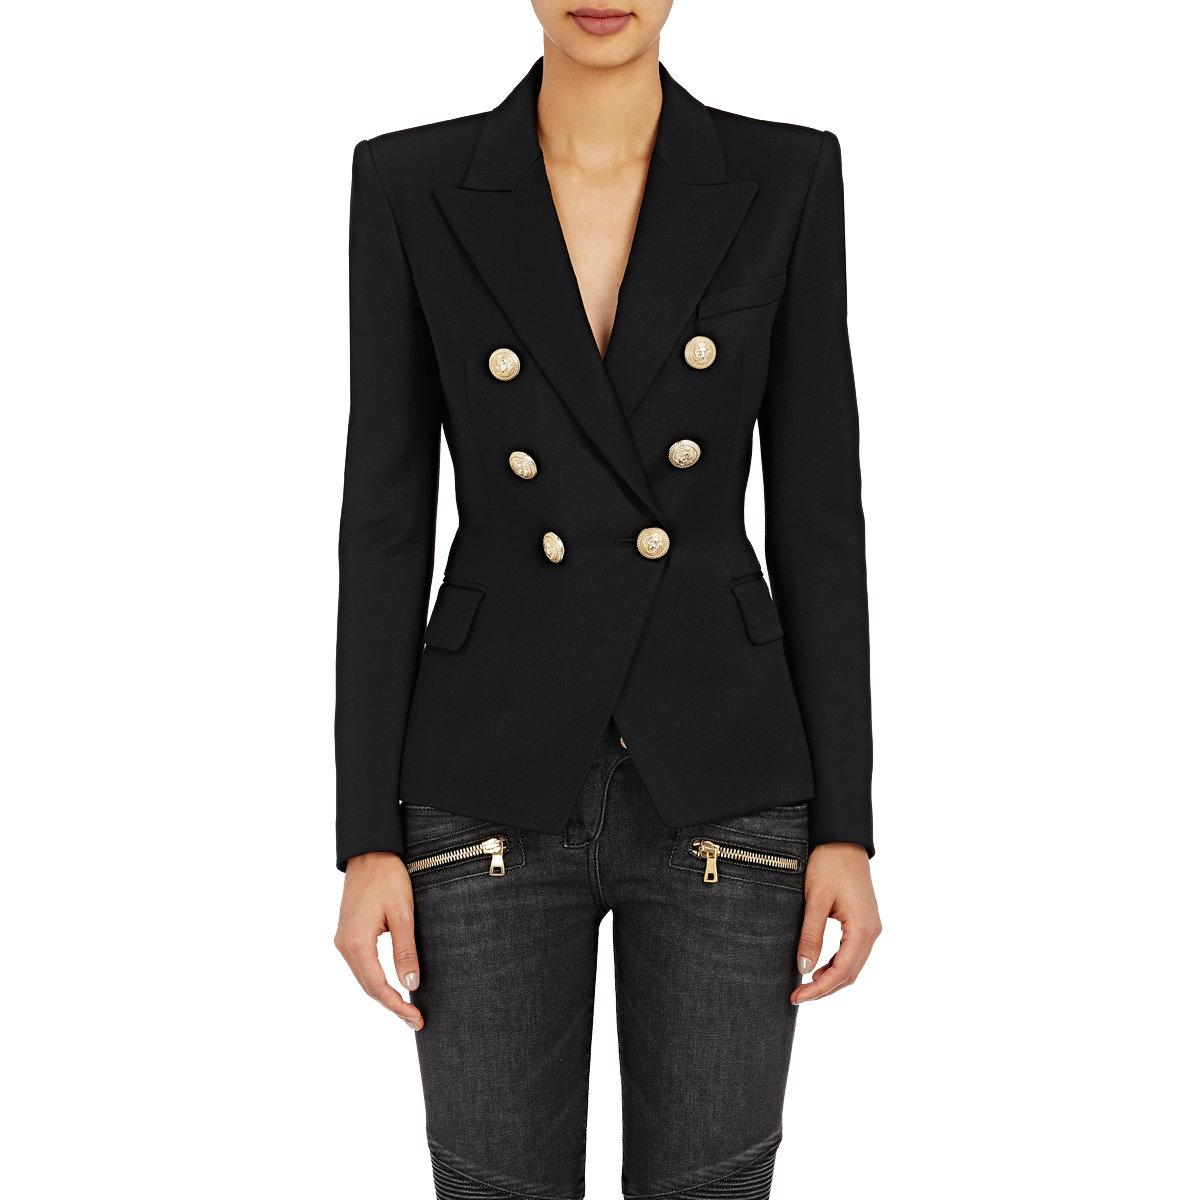 Founded by Pierre Balmain in , this iconic Parisian label epitomizes power dressing. Influenced by the confident style of modern women, Creative Director Olivier Rousteing has redefined the brand's high-octane aesthetic while remaining true to the vision and trailblazing spirit of its founder.